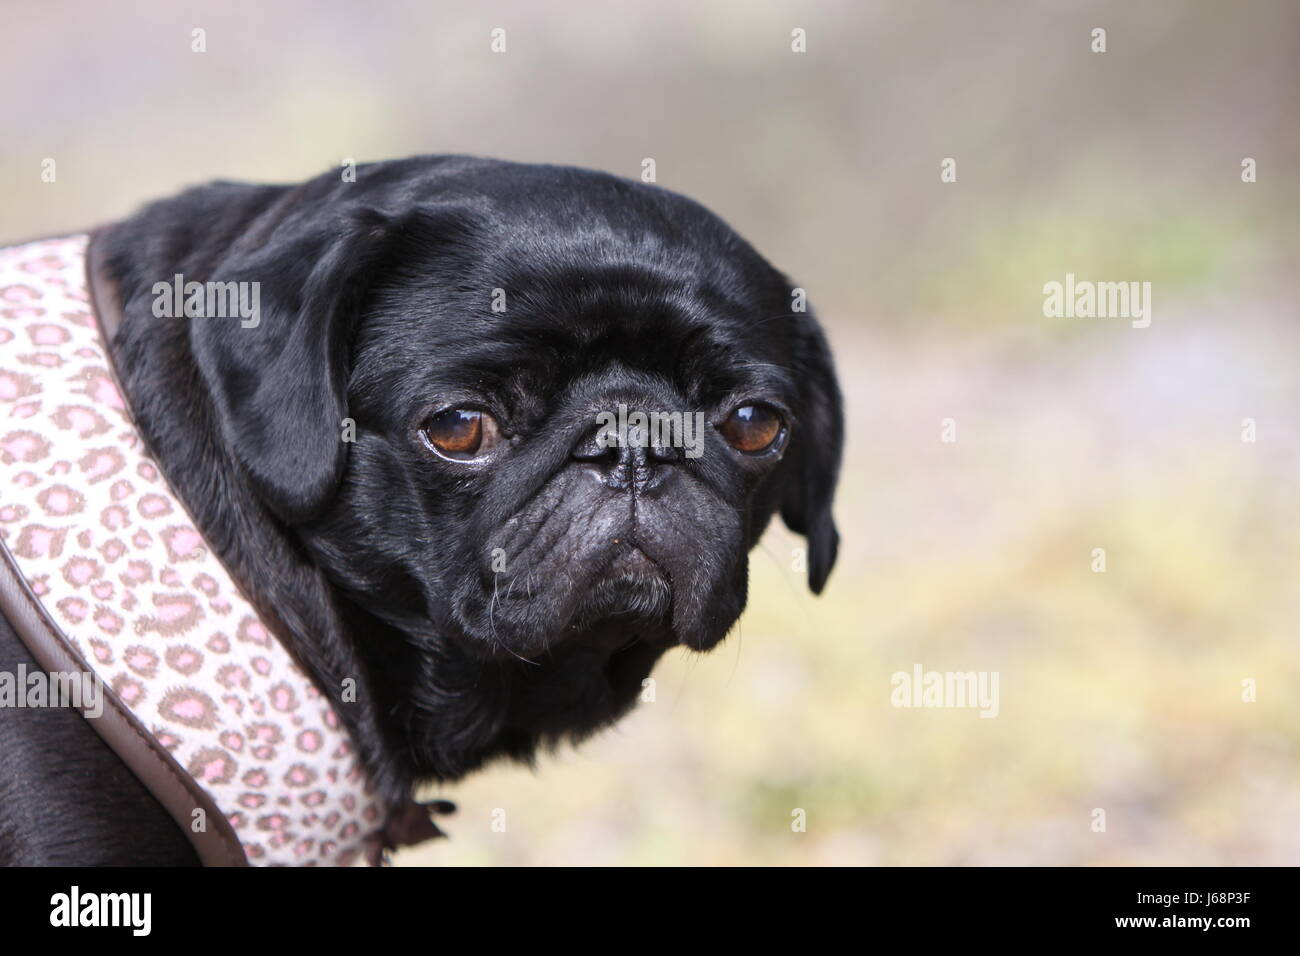 black pug - Stock Image